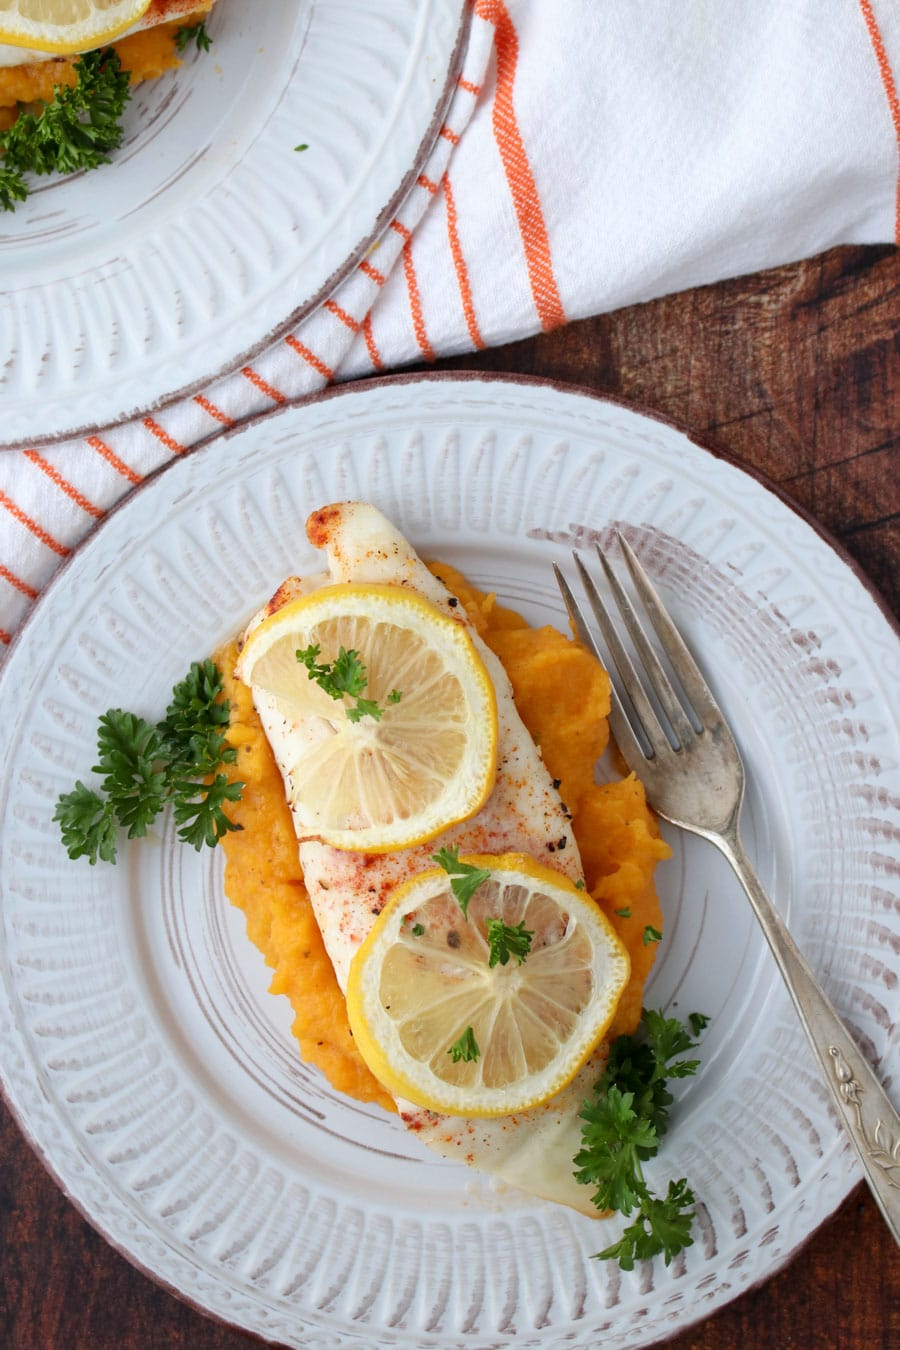 A piece of fish topped with lemon slices sitting on top of butternut squash puree